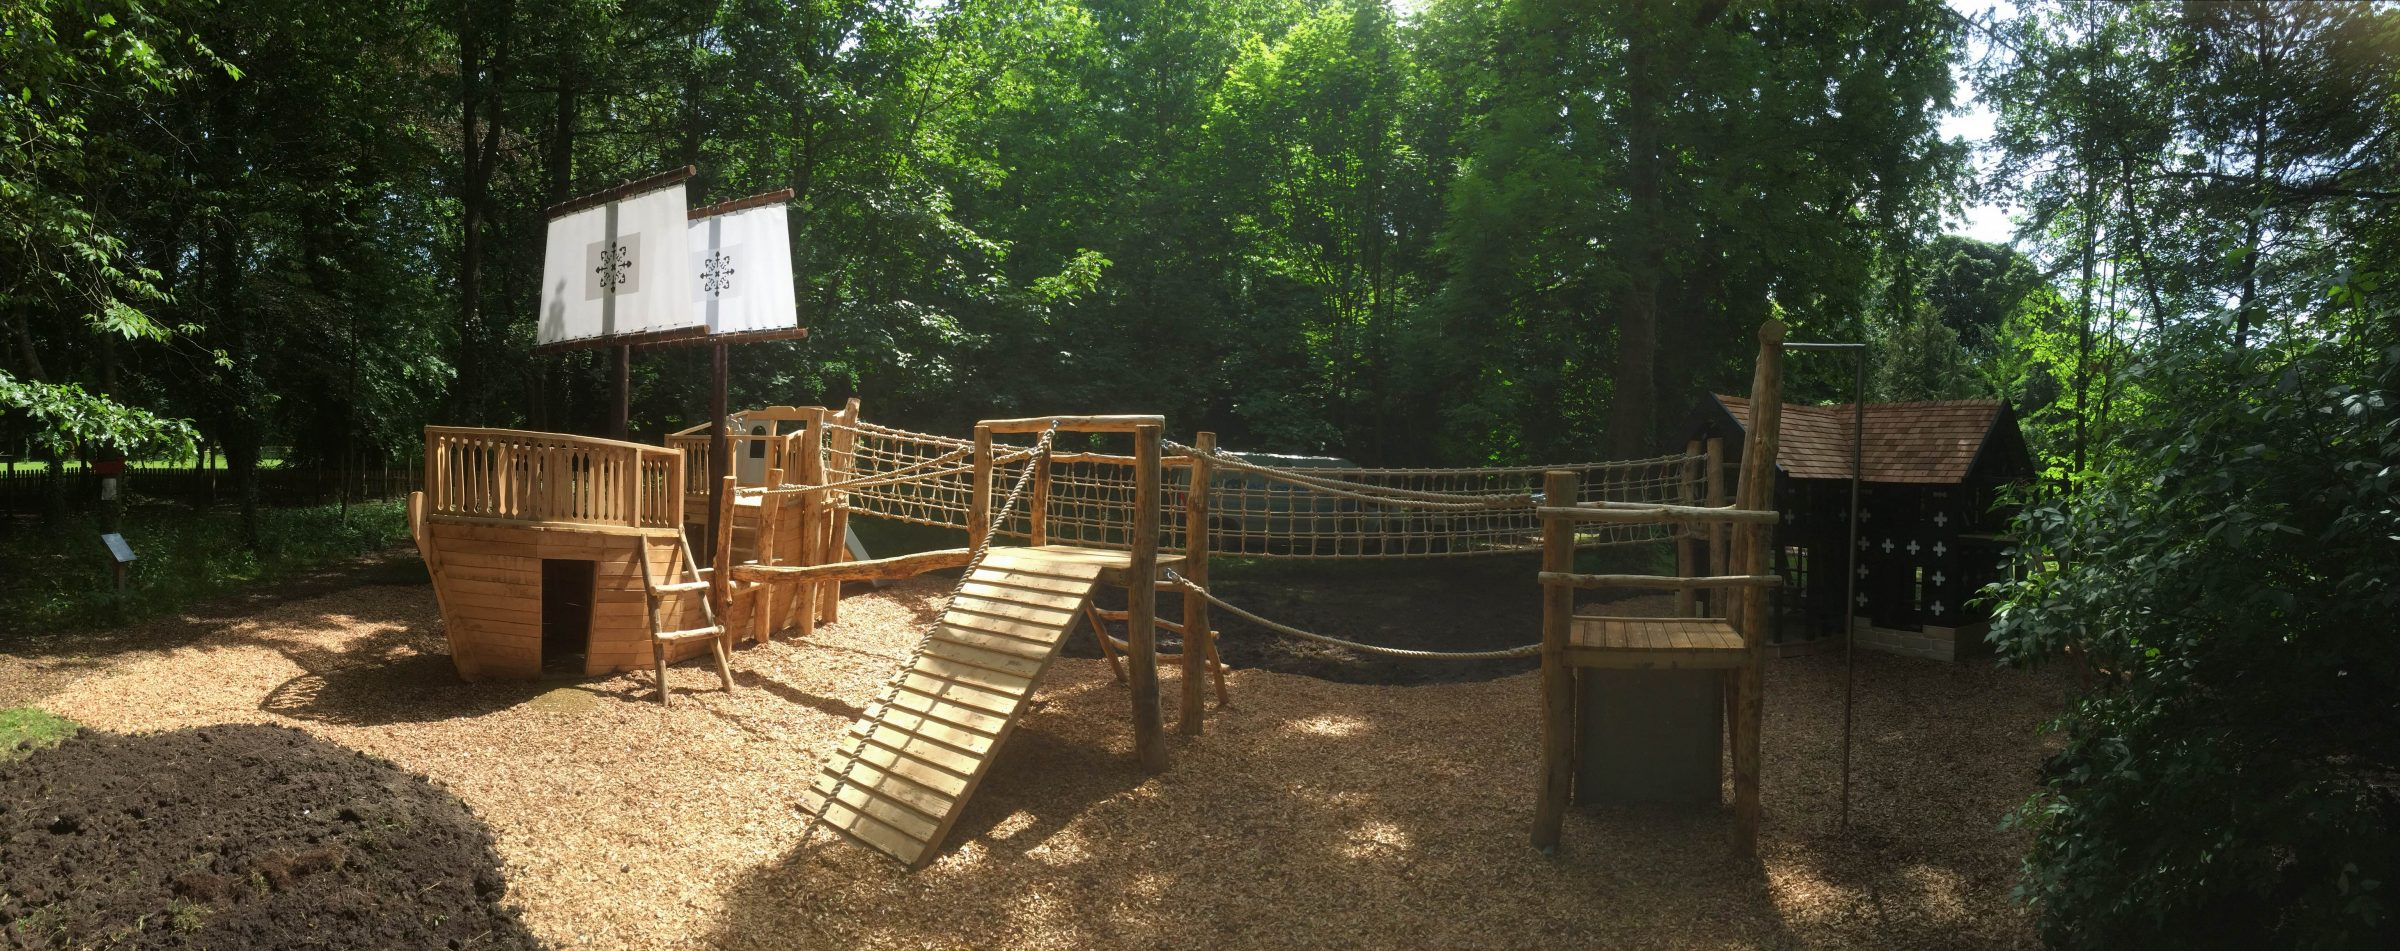 Panorama Of Play Area Samlesbury Hall Childrens Outdoor Play Area With Replica Landmark And The Mayflower Play Ship By Flights Of Fantasy